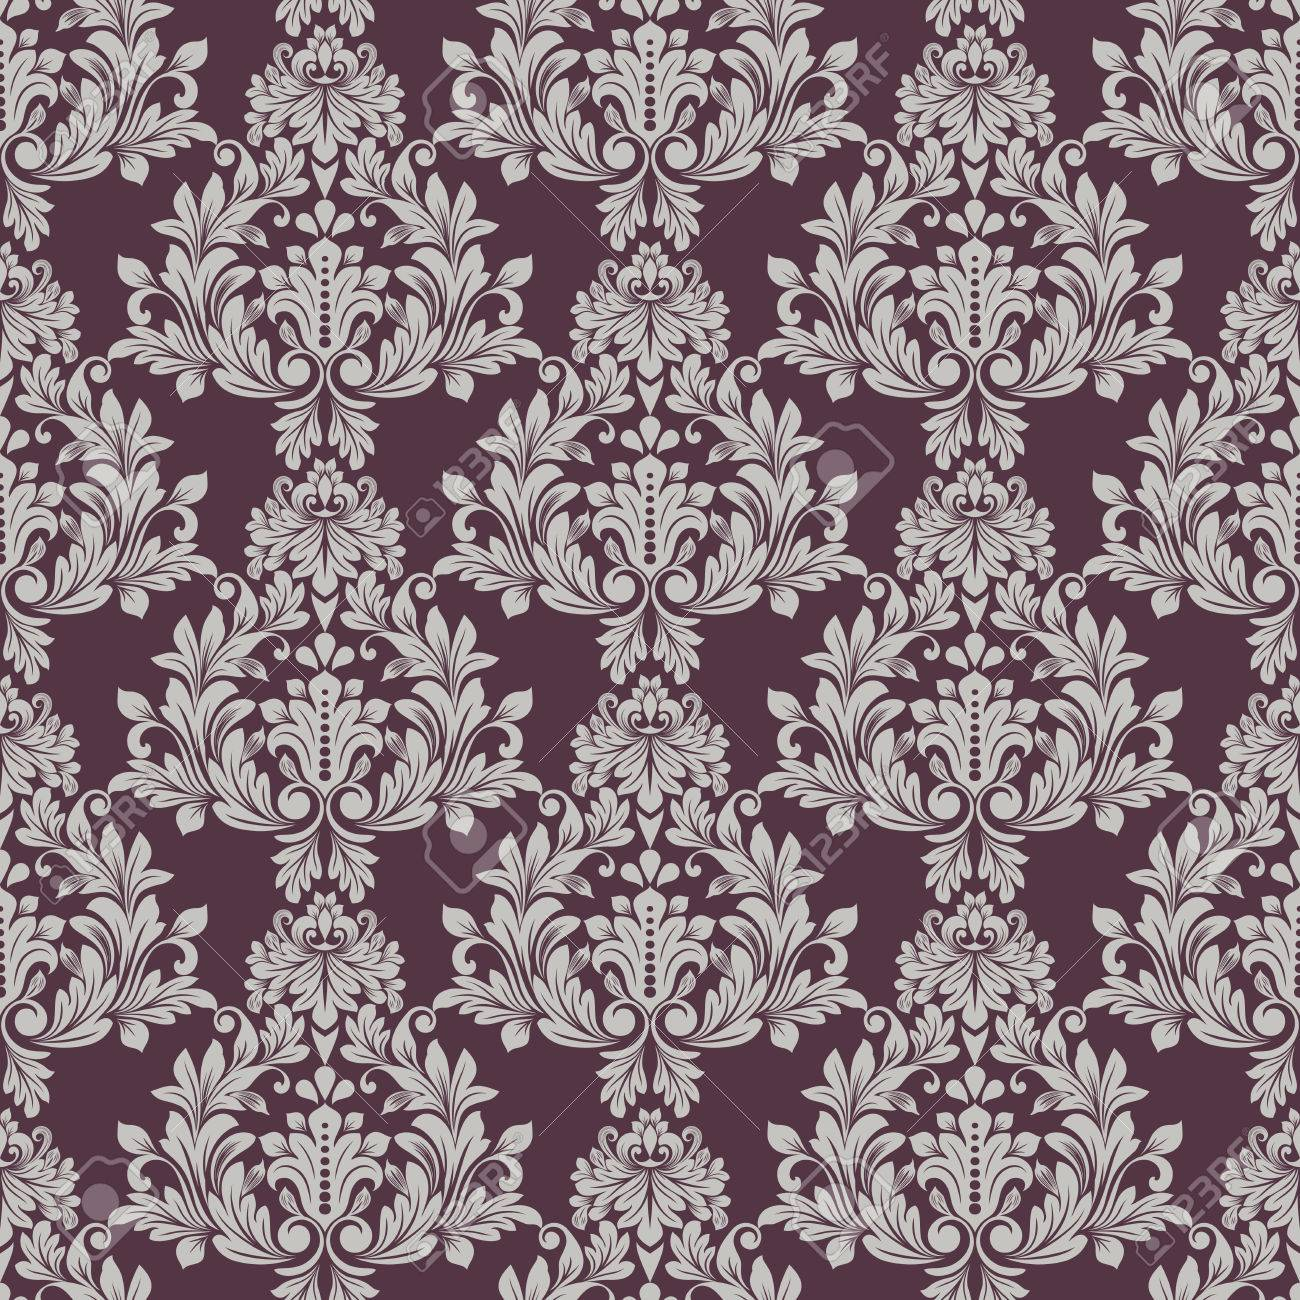 Seamless Grey And Dark Purple Floral Wallpaper Vector Background Vintage Damask Pattern Backdrop Stock